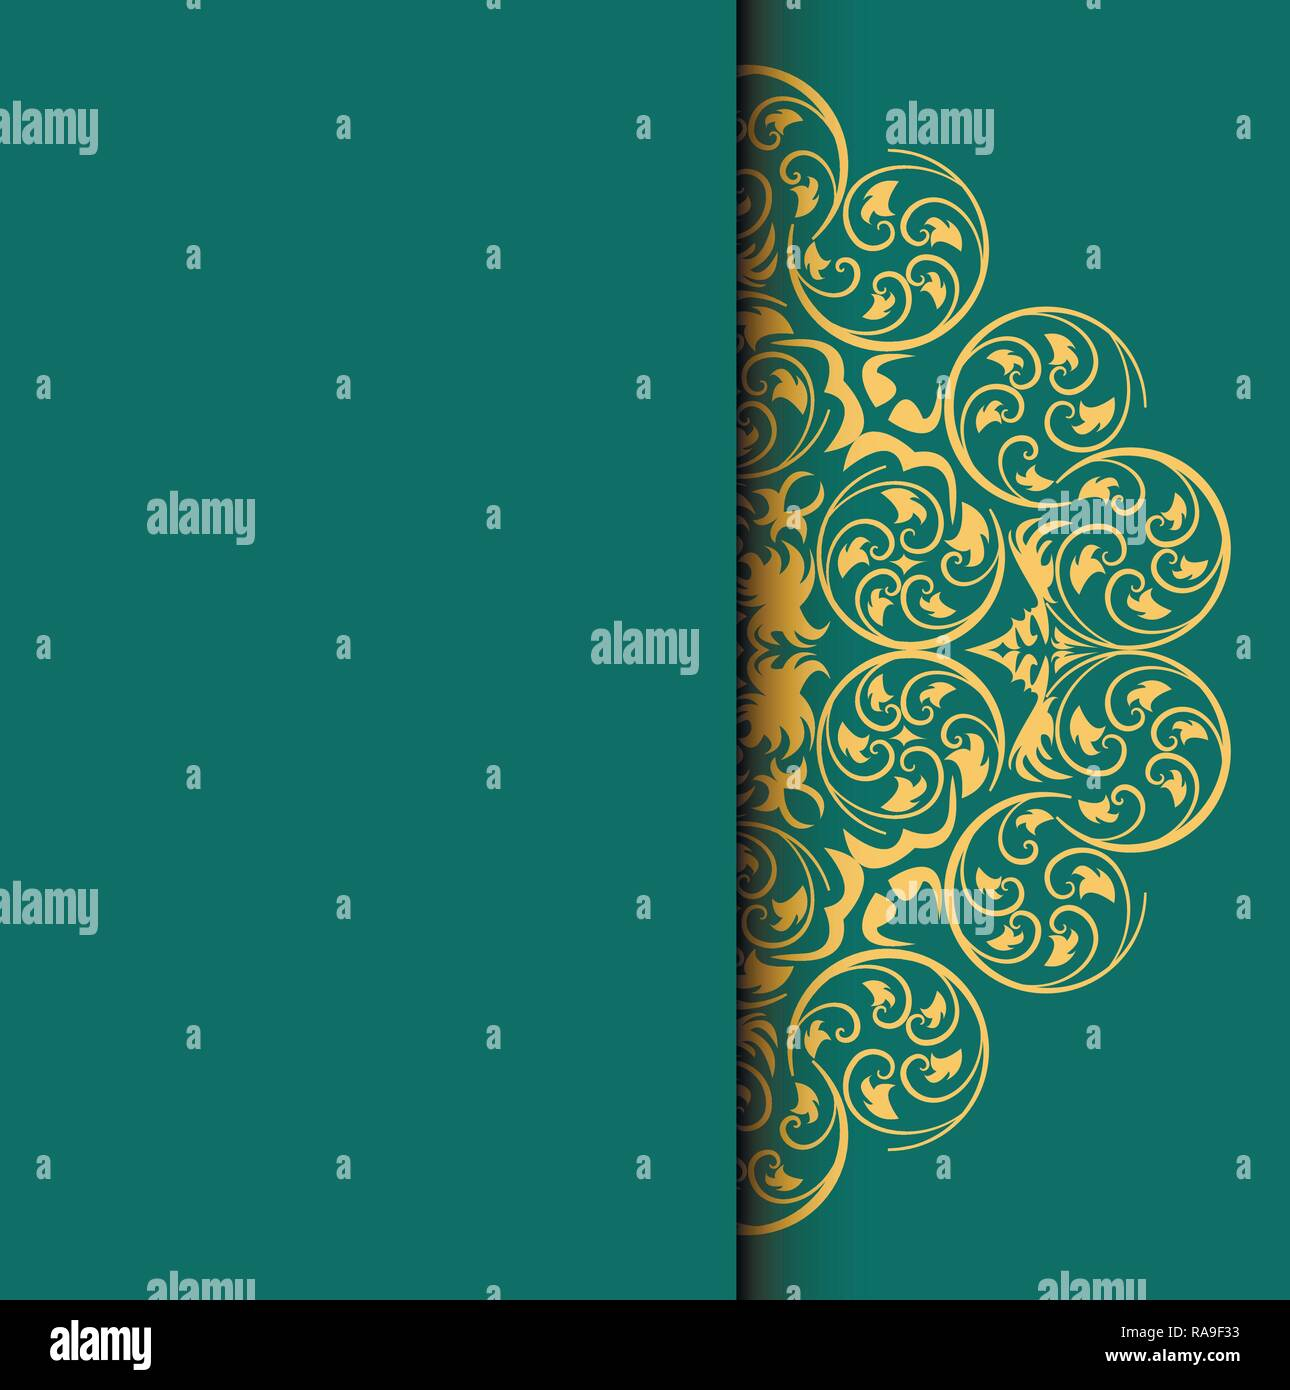 Invitation Card Background With Round Pattern For Your